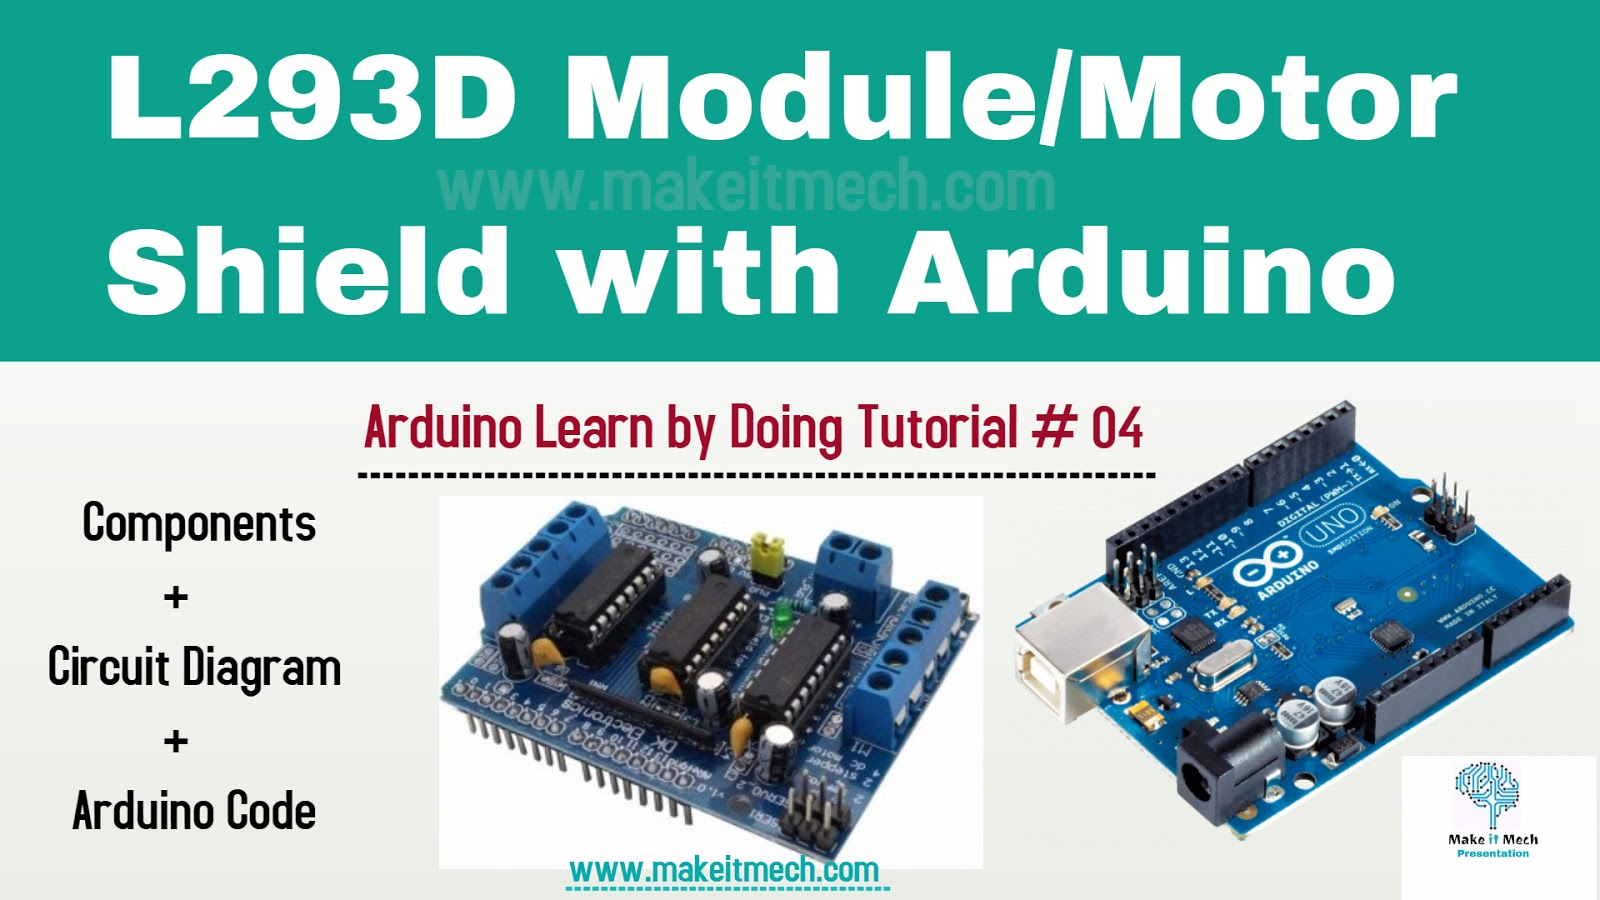 How To Use L293d Module Motor Shield With Arduino Make